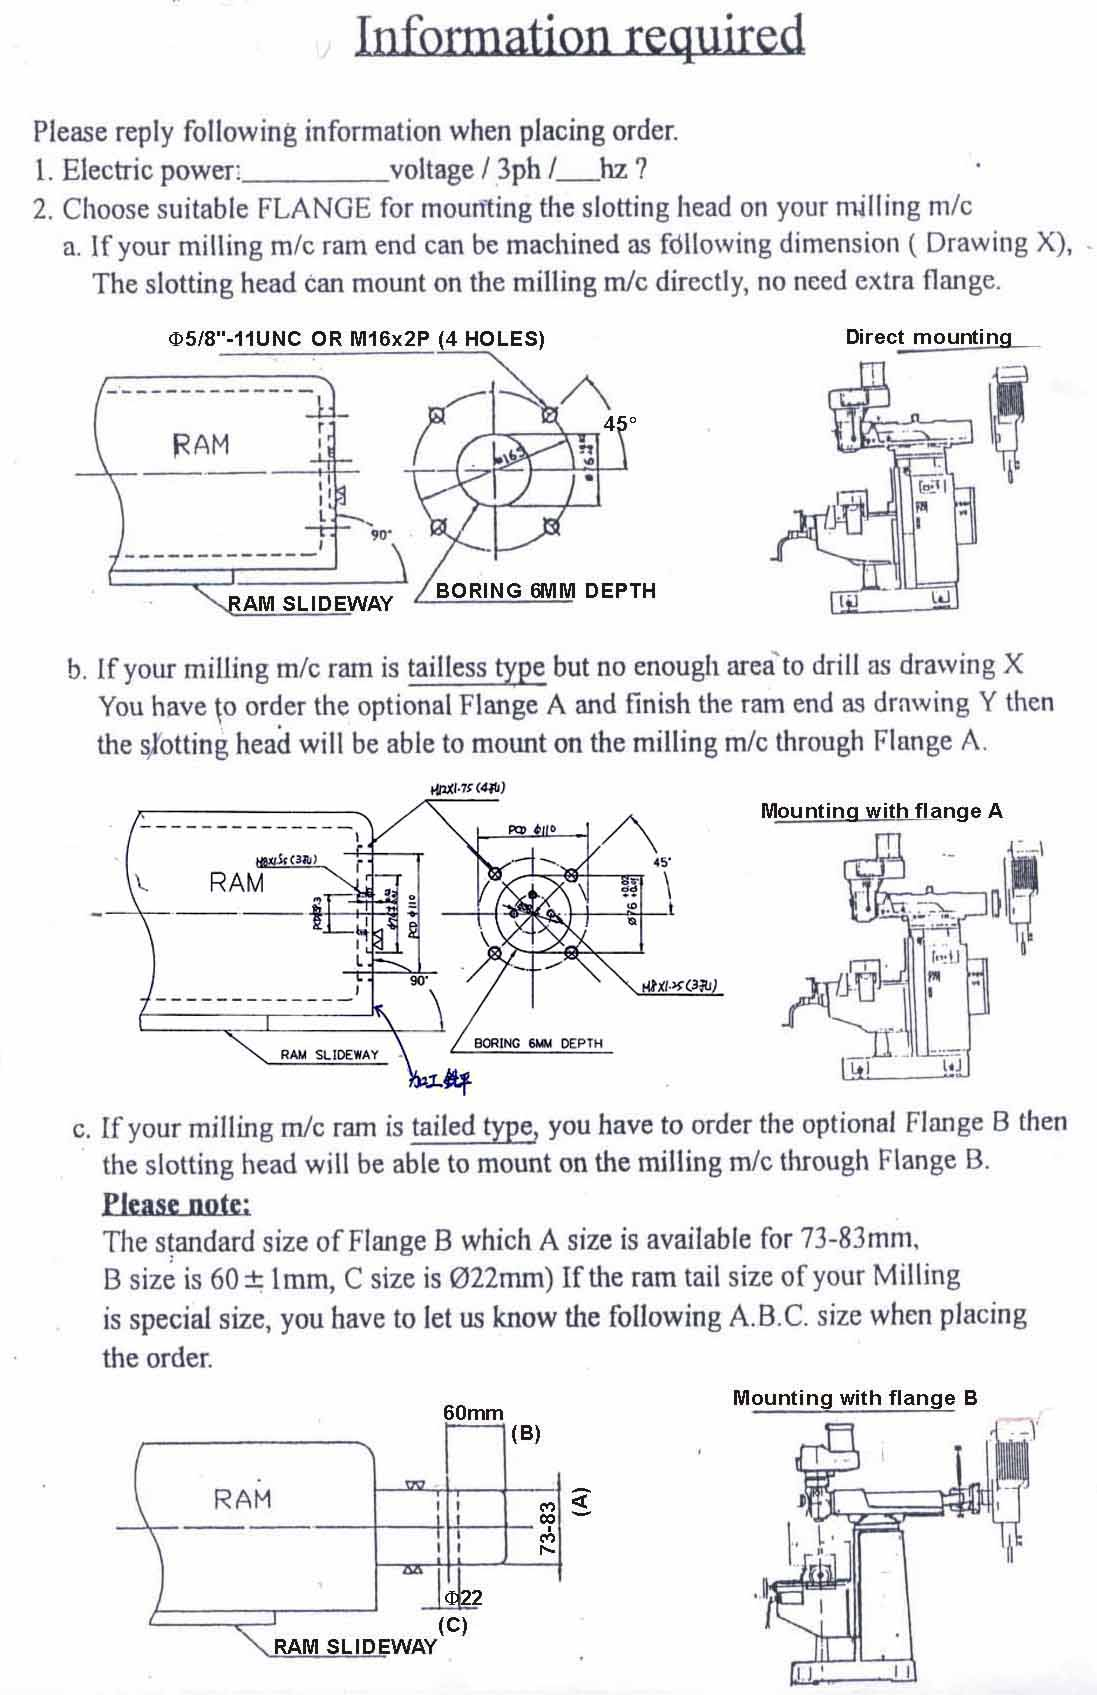 drawings for mill flanges for the Tarng slotting head